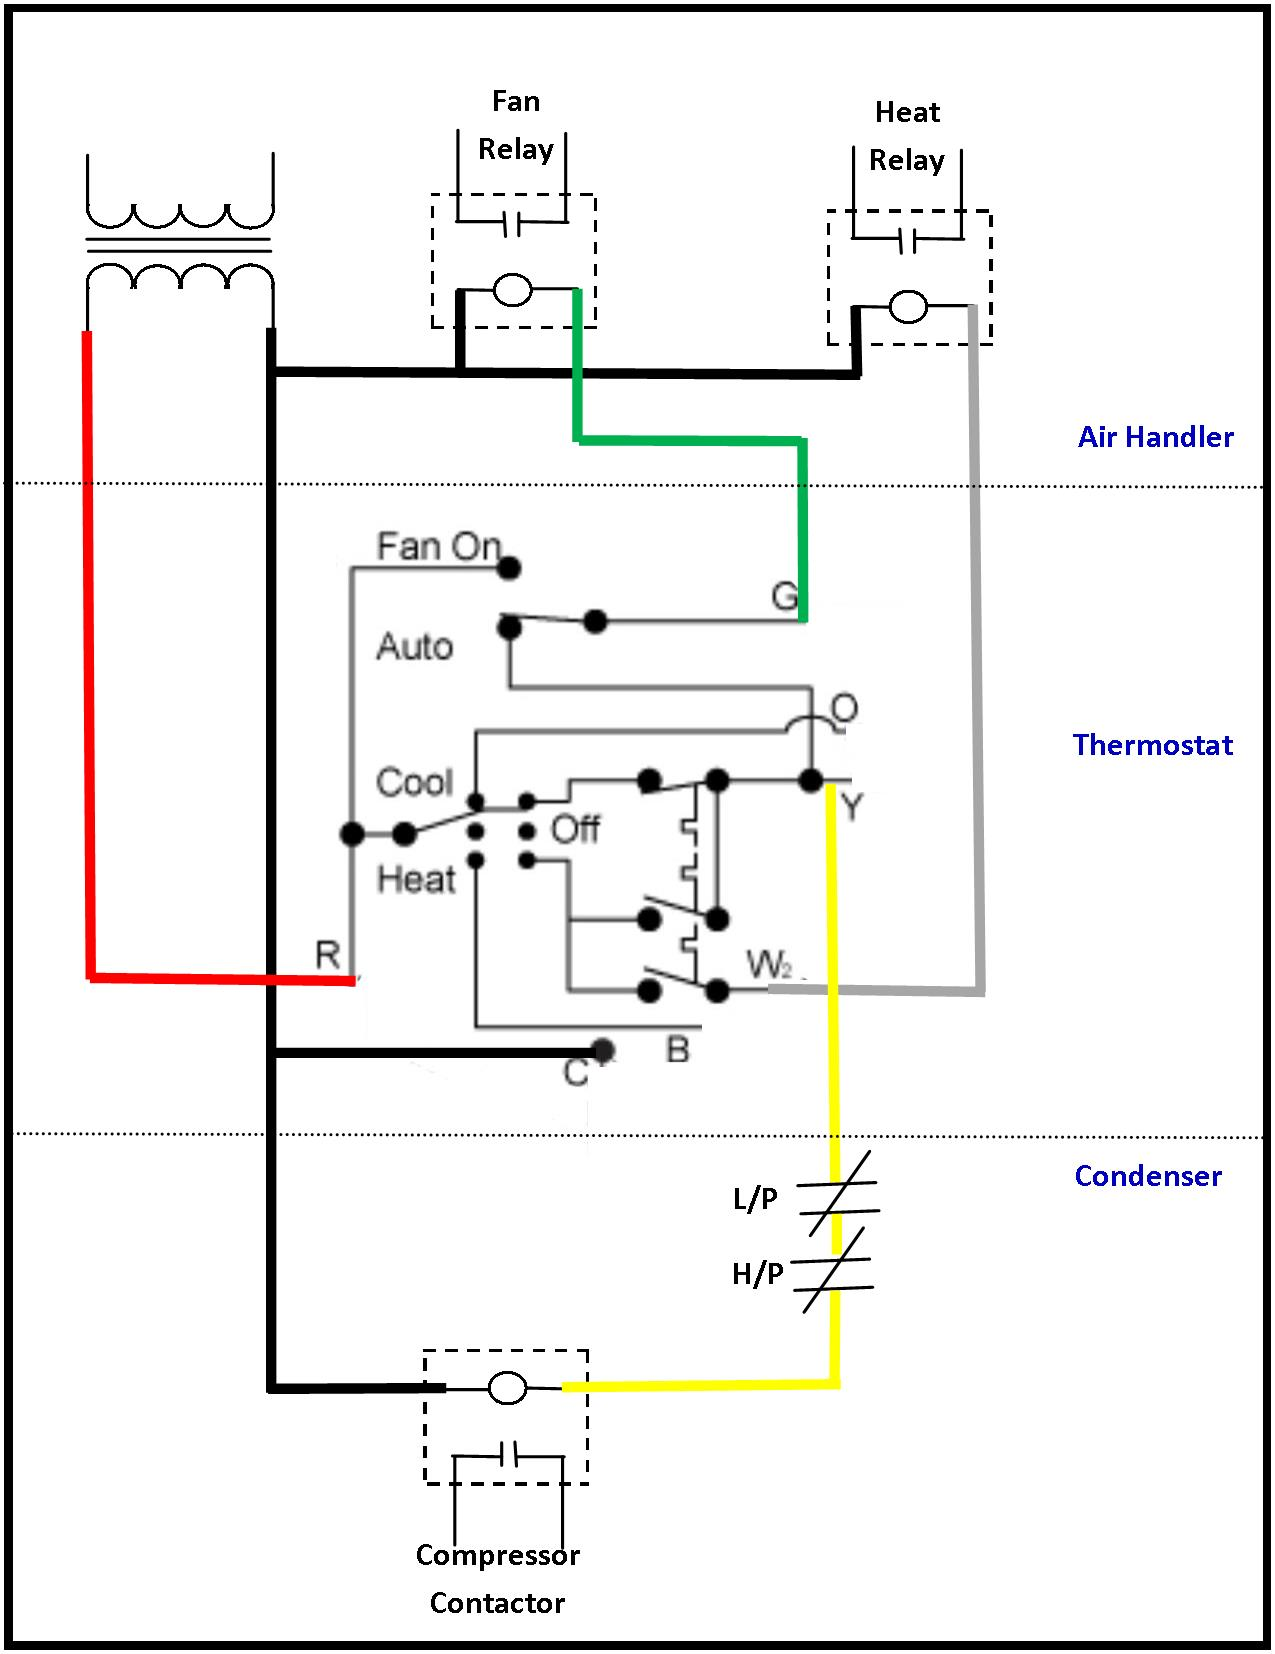 ac low voltage wiring diagram crayfish internal correct compressor control  total performance